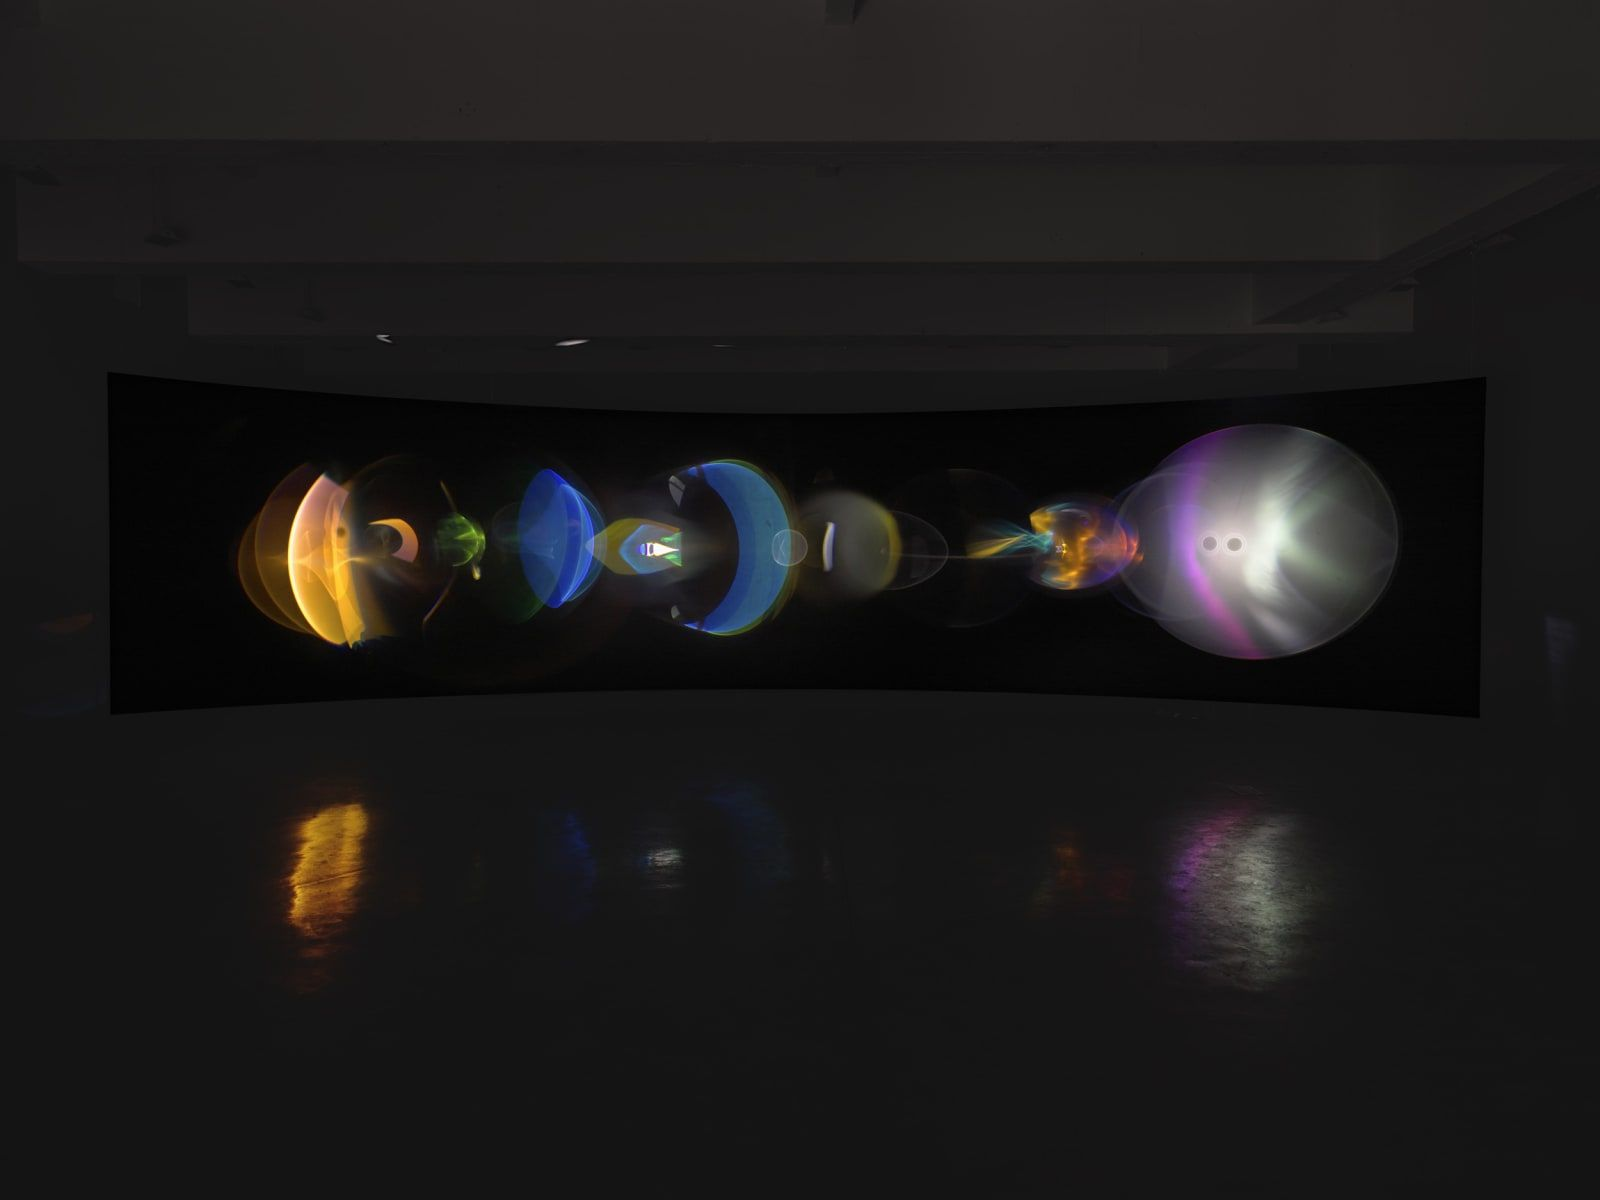 Olafur Eliasson, Your ocular relief, 2021, from